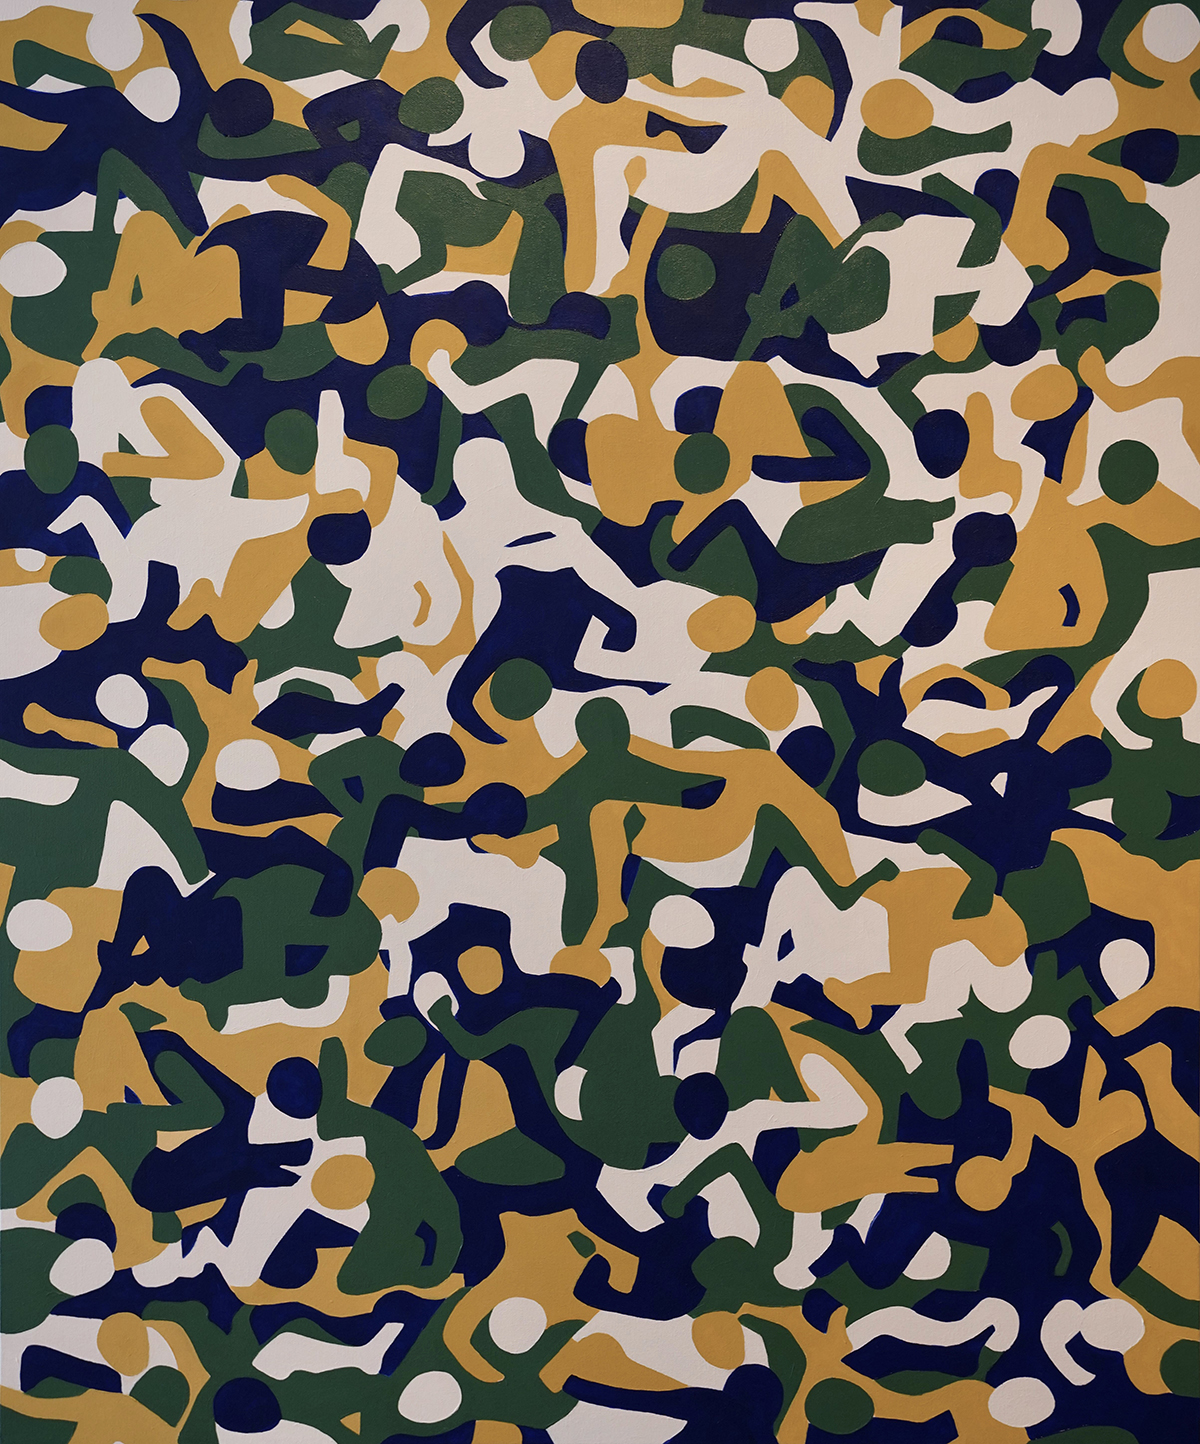 untitled camo 5, 30in x 36in, oil on canvasweb.jpg